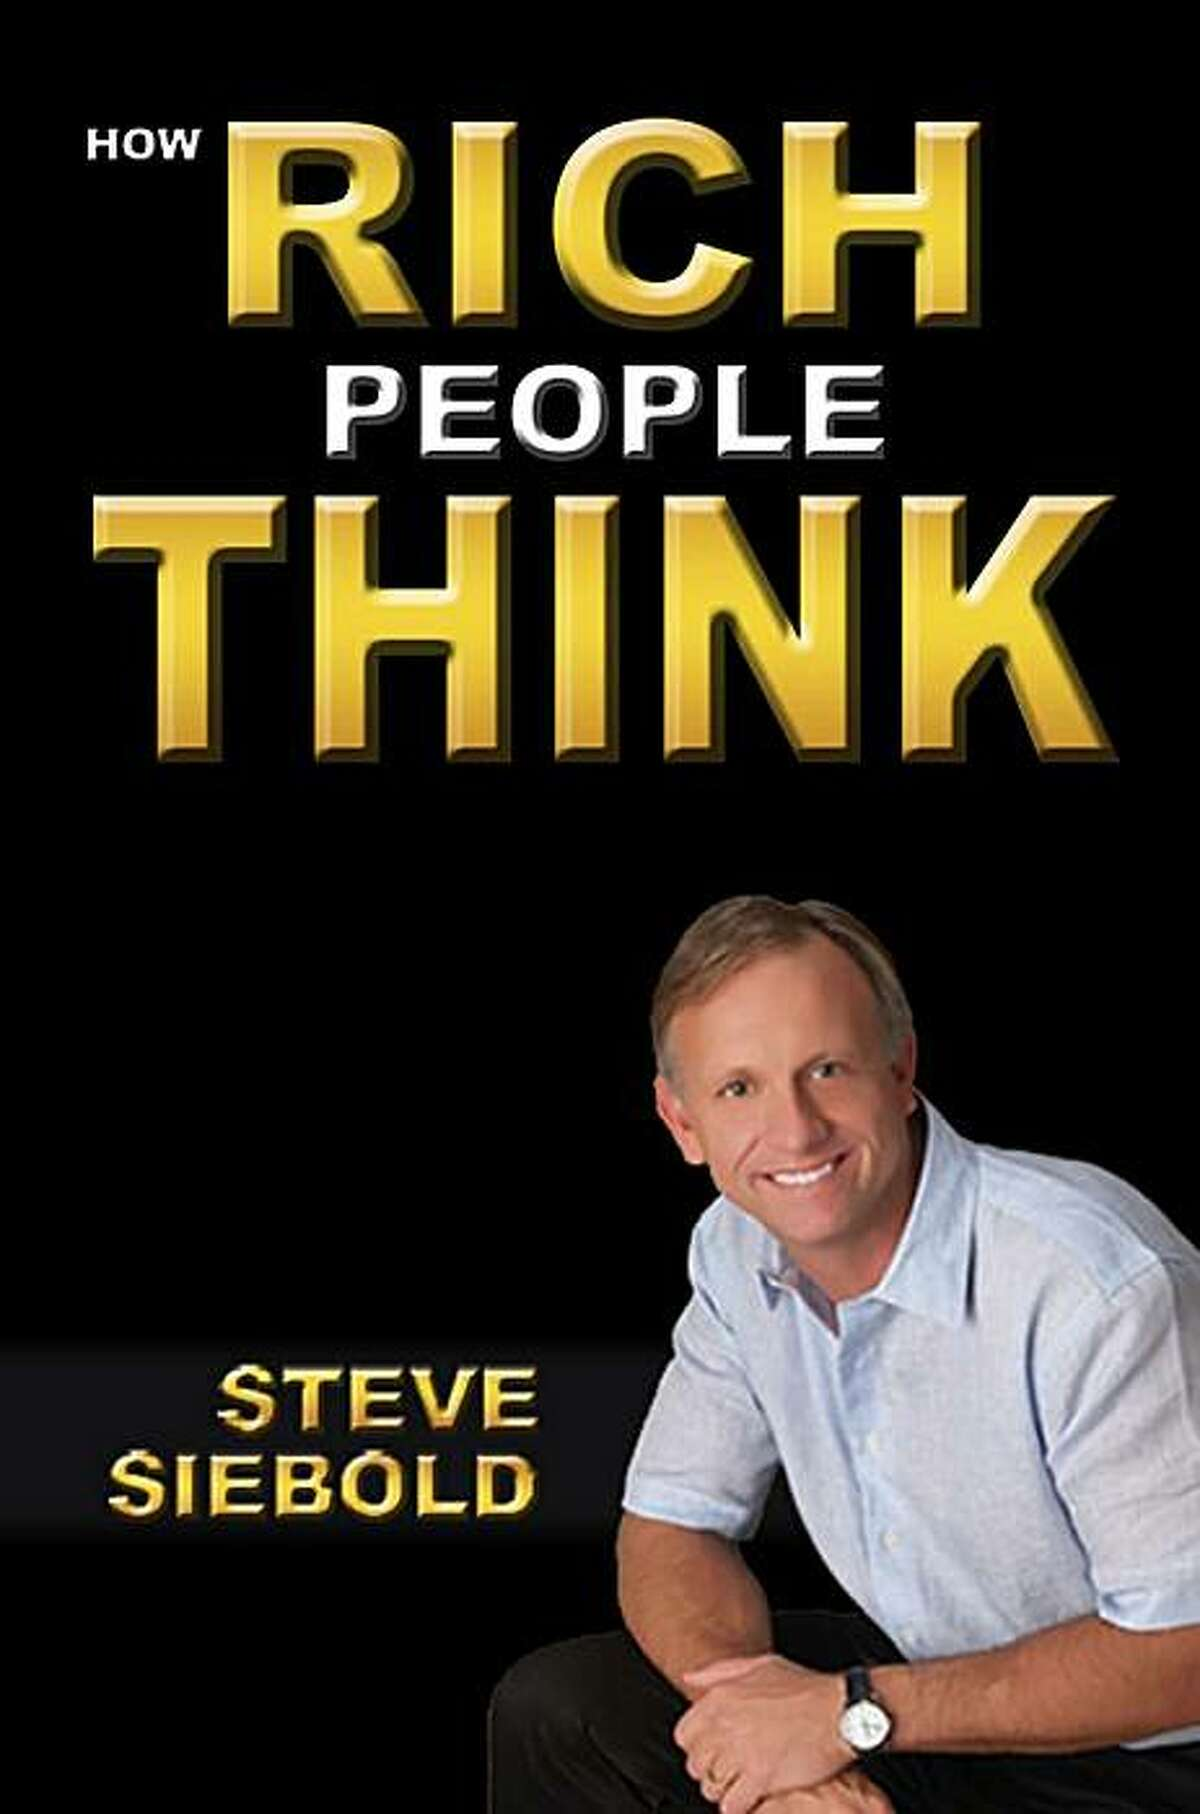 Motivational speaker Steve Siebold has spent 20 years talking with Fortune 500 company executives and leading training sessions. His latest book,